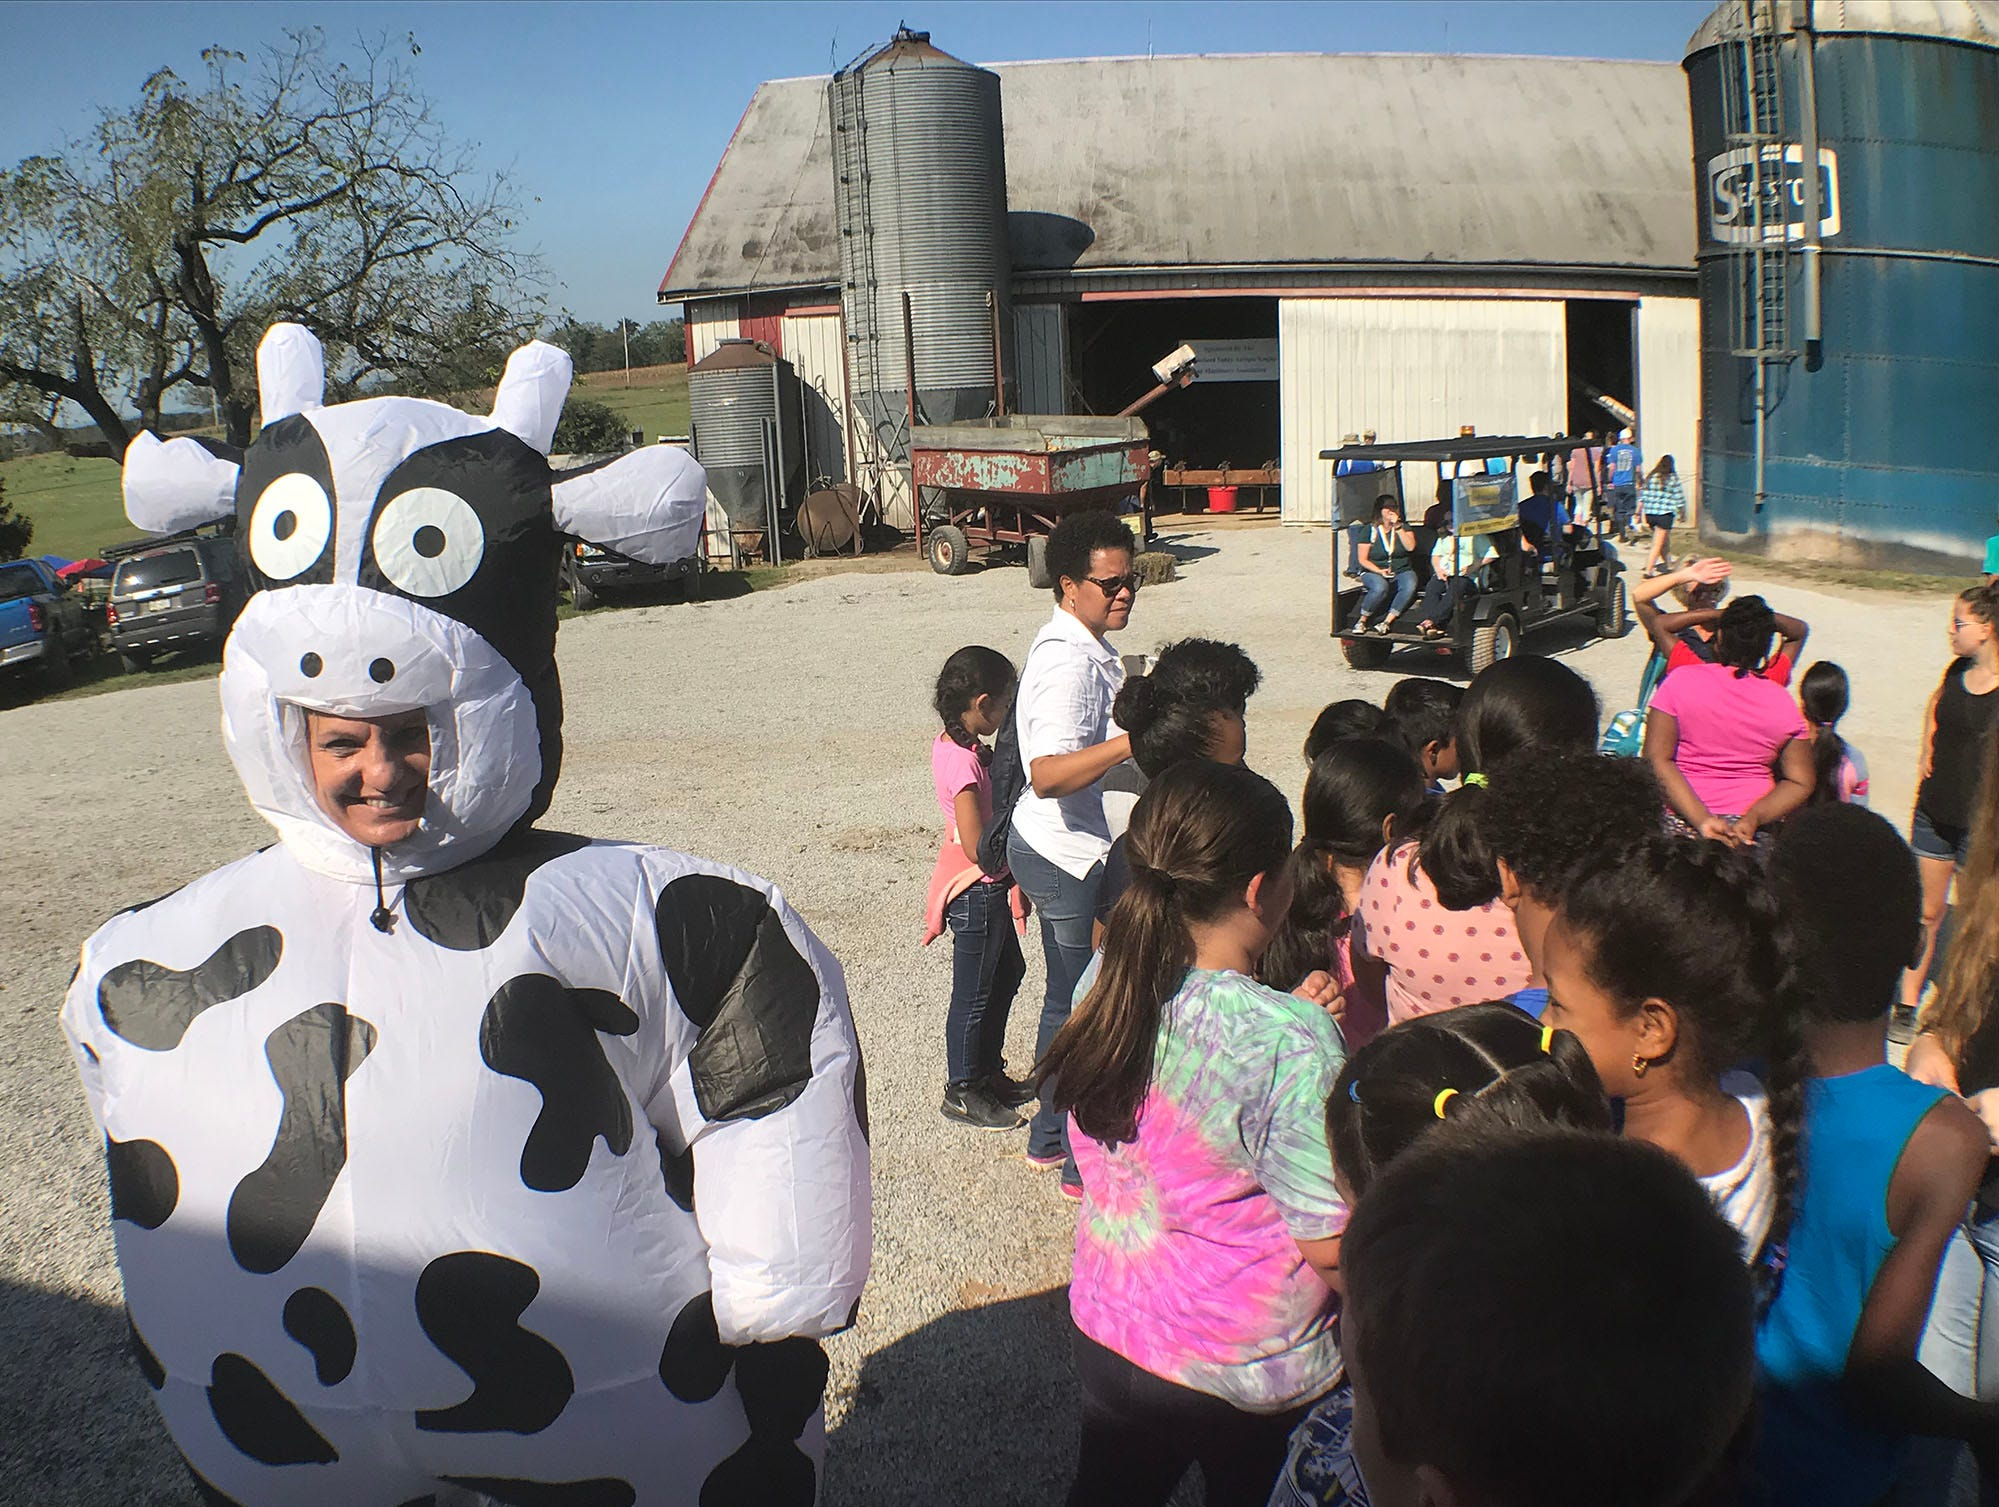 Franklin County fourth-graders are visiting the Franklin Fall Farm Fun Fest, today. The annual event is being hosted by a father-daughter dairy farming team, Musser Farm. The students' trip is hosted by the Agriculture Education Institute. The fest itself is hosted by the Franklin County Farm Bureau.